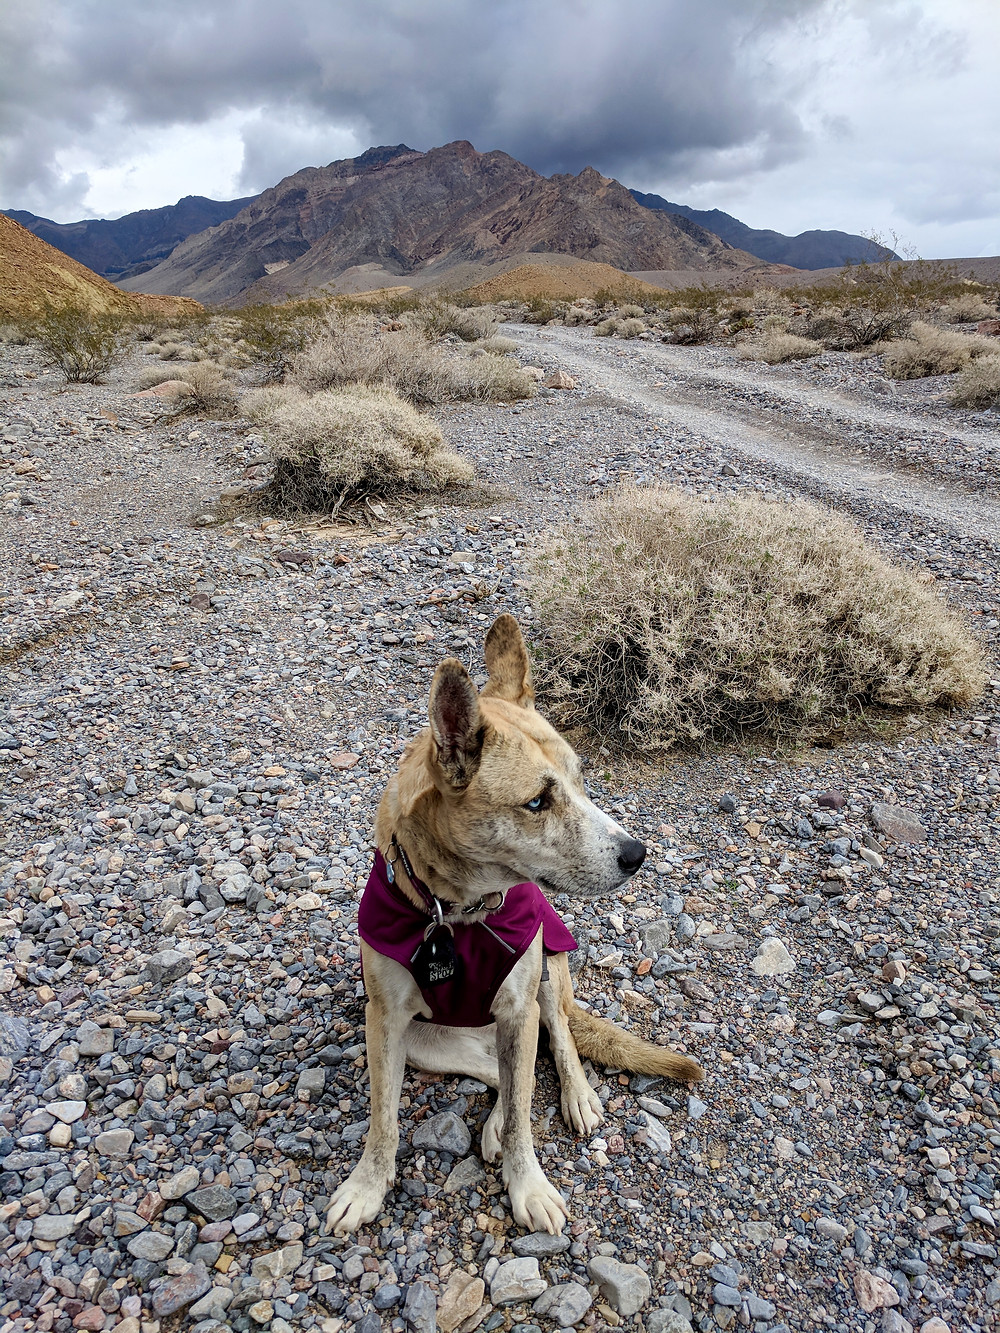 Elu wearing her coat, sitting on rocks in our campsite, next to the road. Photo by Tenley Lozano.